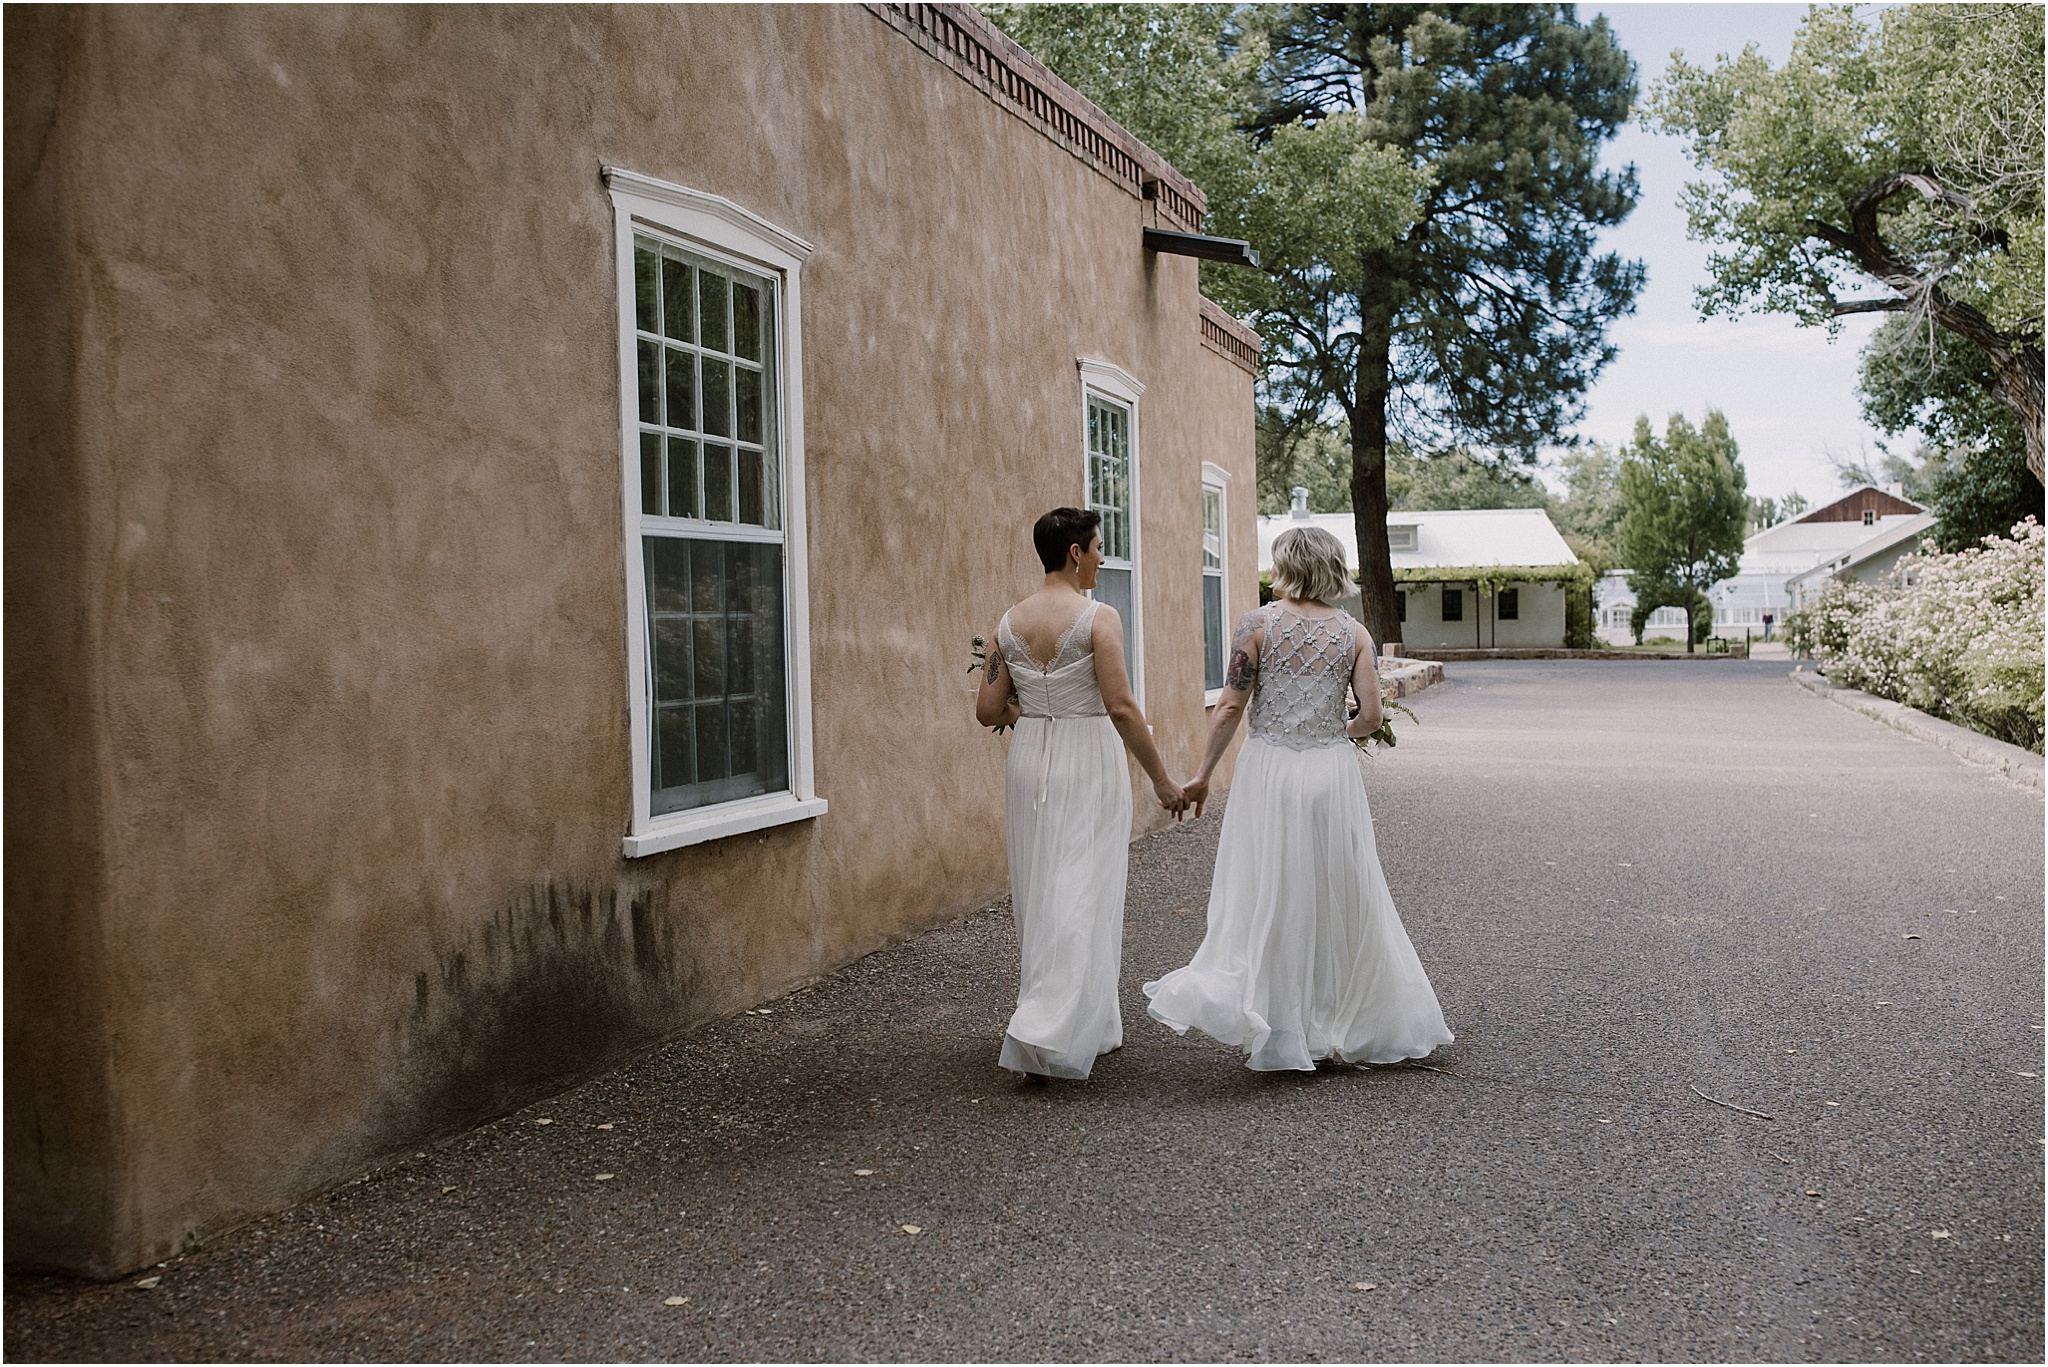 Kelly_Lisa_Los Poblanos_Wedding_Blue Rose Photography91